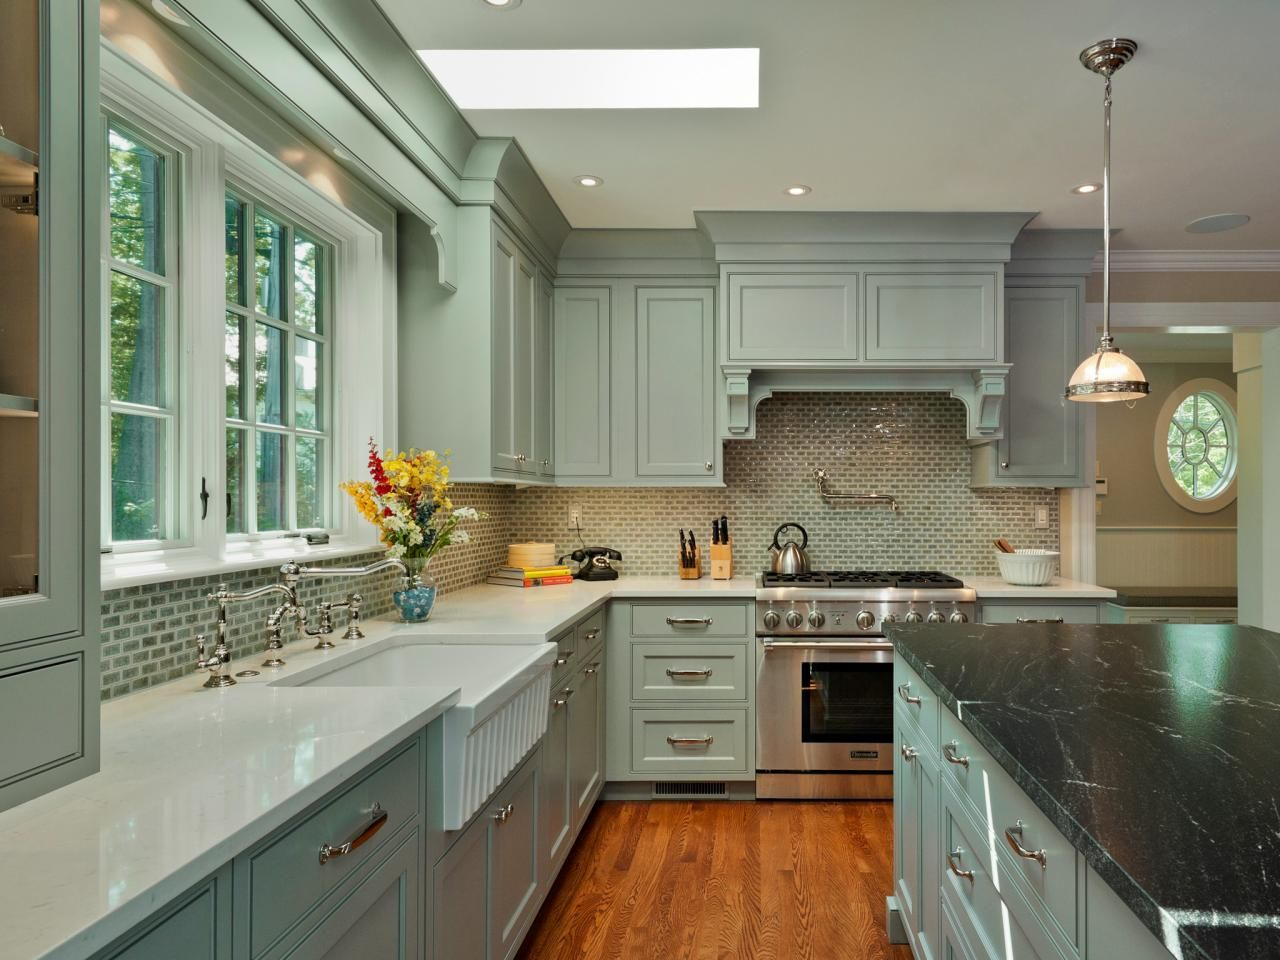 Crave Worthy Kitchen Cabinets Distressed Kitchen Cabinets Diy Distressed Kitchen Kitchen Design